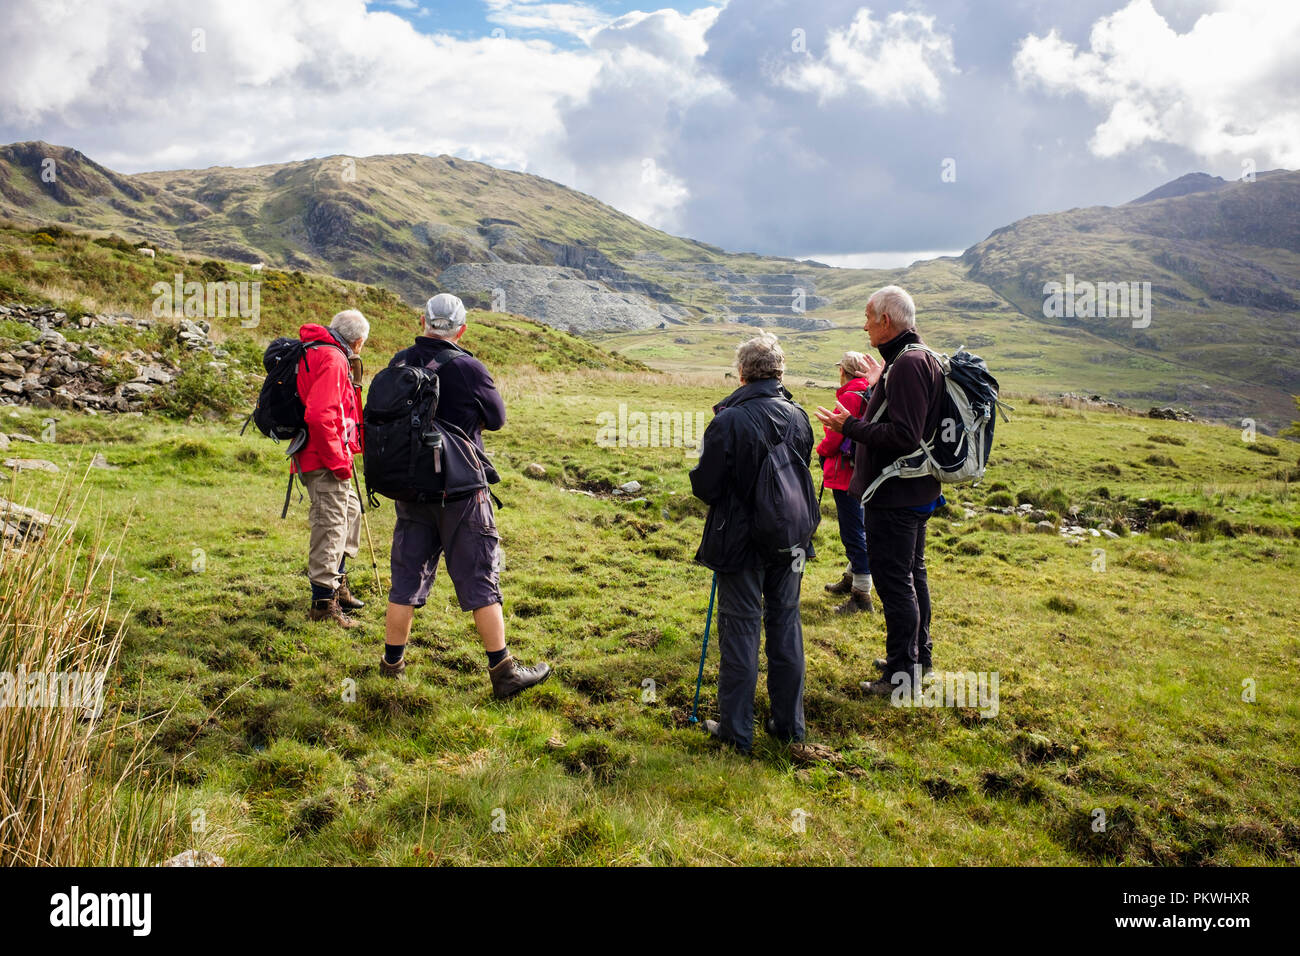 Hikers ramblers in Cwmystradllyn valley looking towards abandoned slate quarry in Snowdonia National Park. Porthmadog, Gwynedd, Wales, UK, Britain Stock Photo